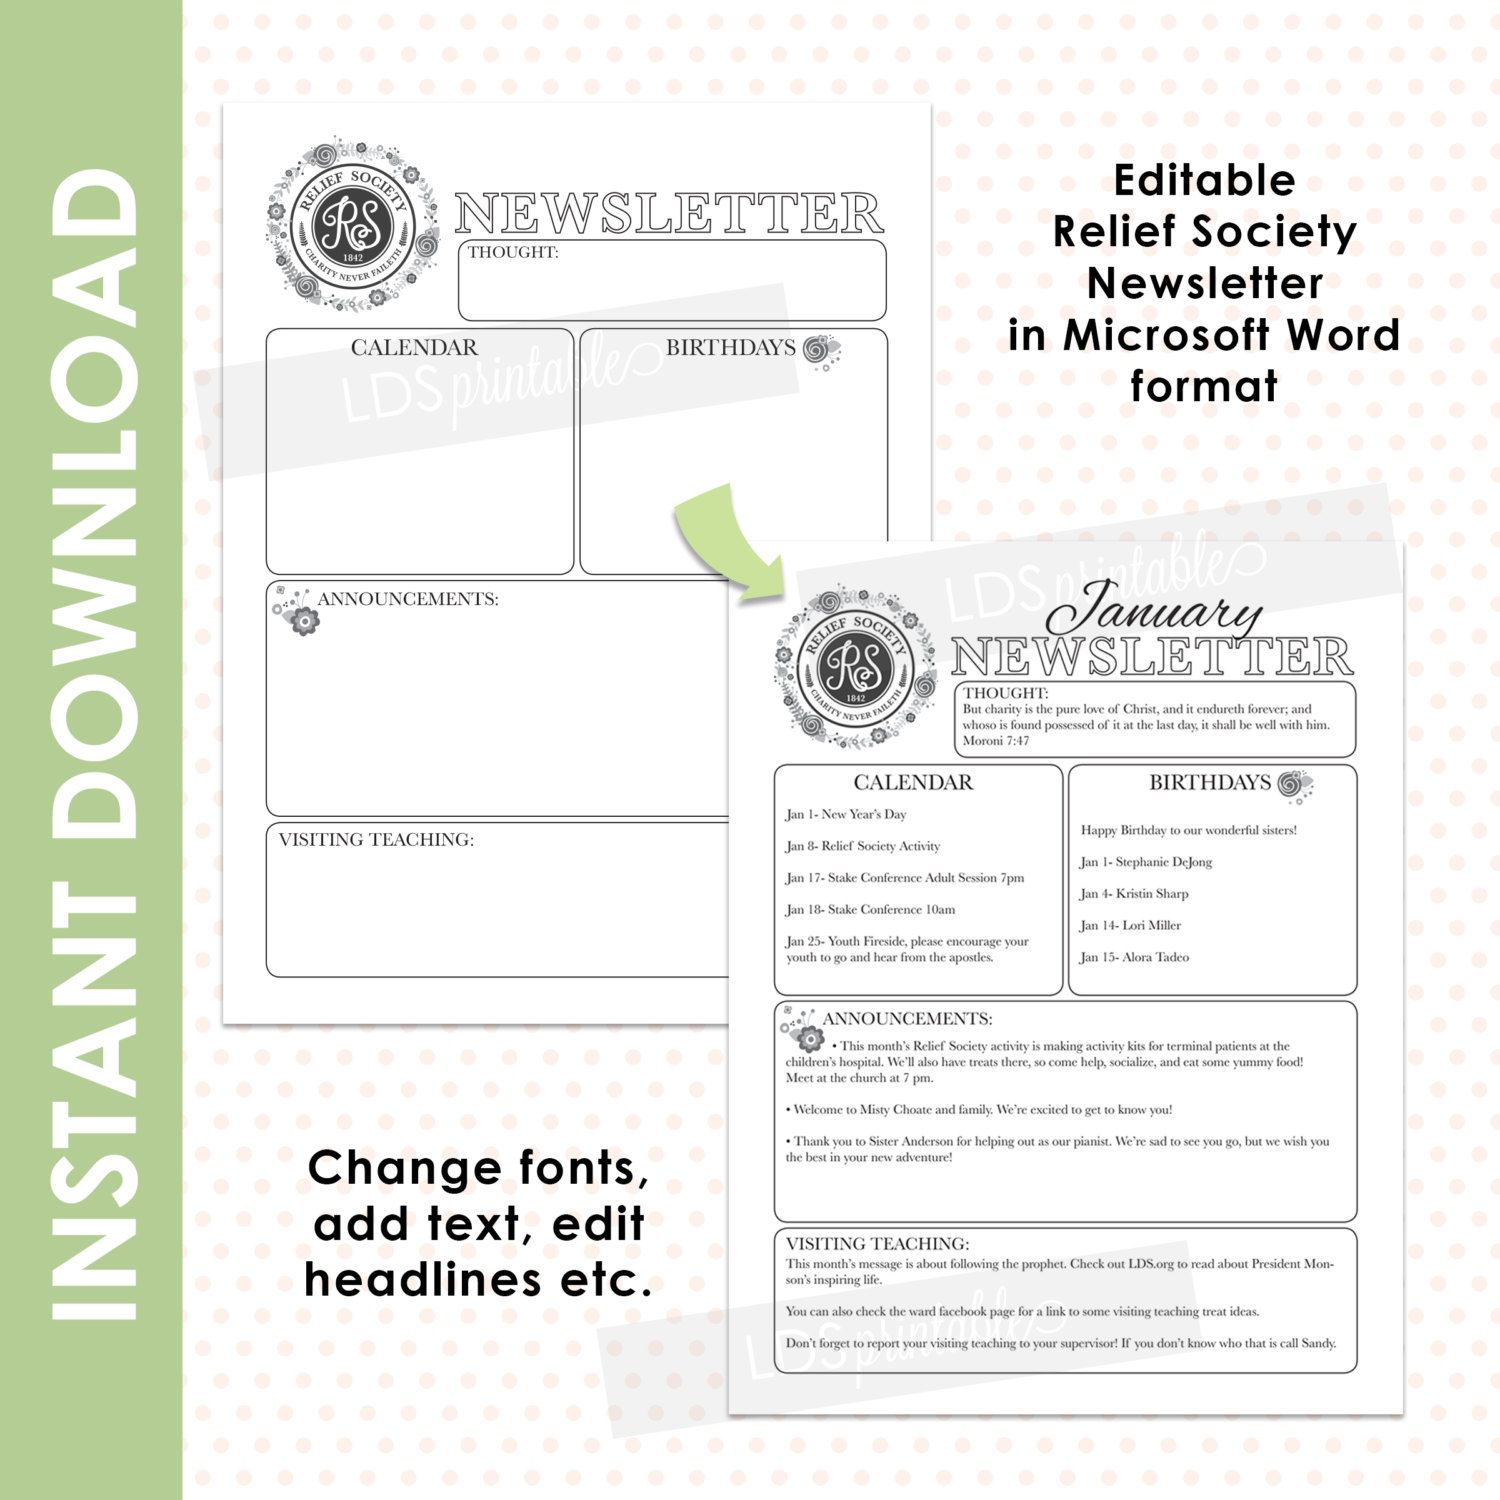 LDS Relief Society Editable Newsletter in Microsoft Word